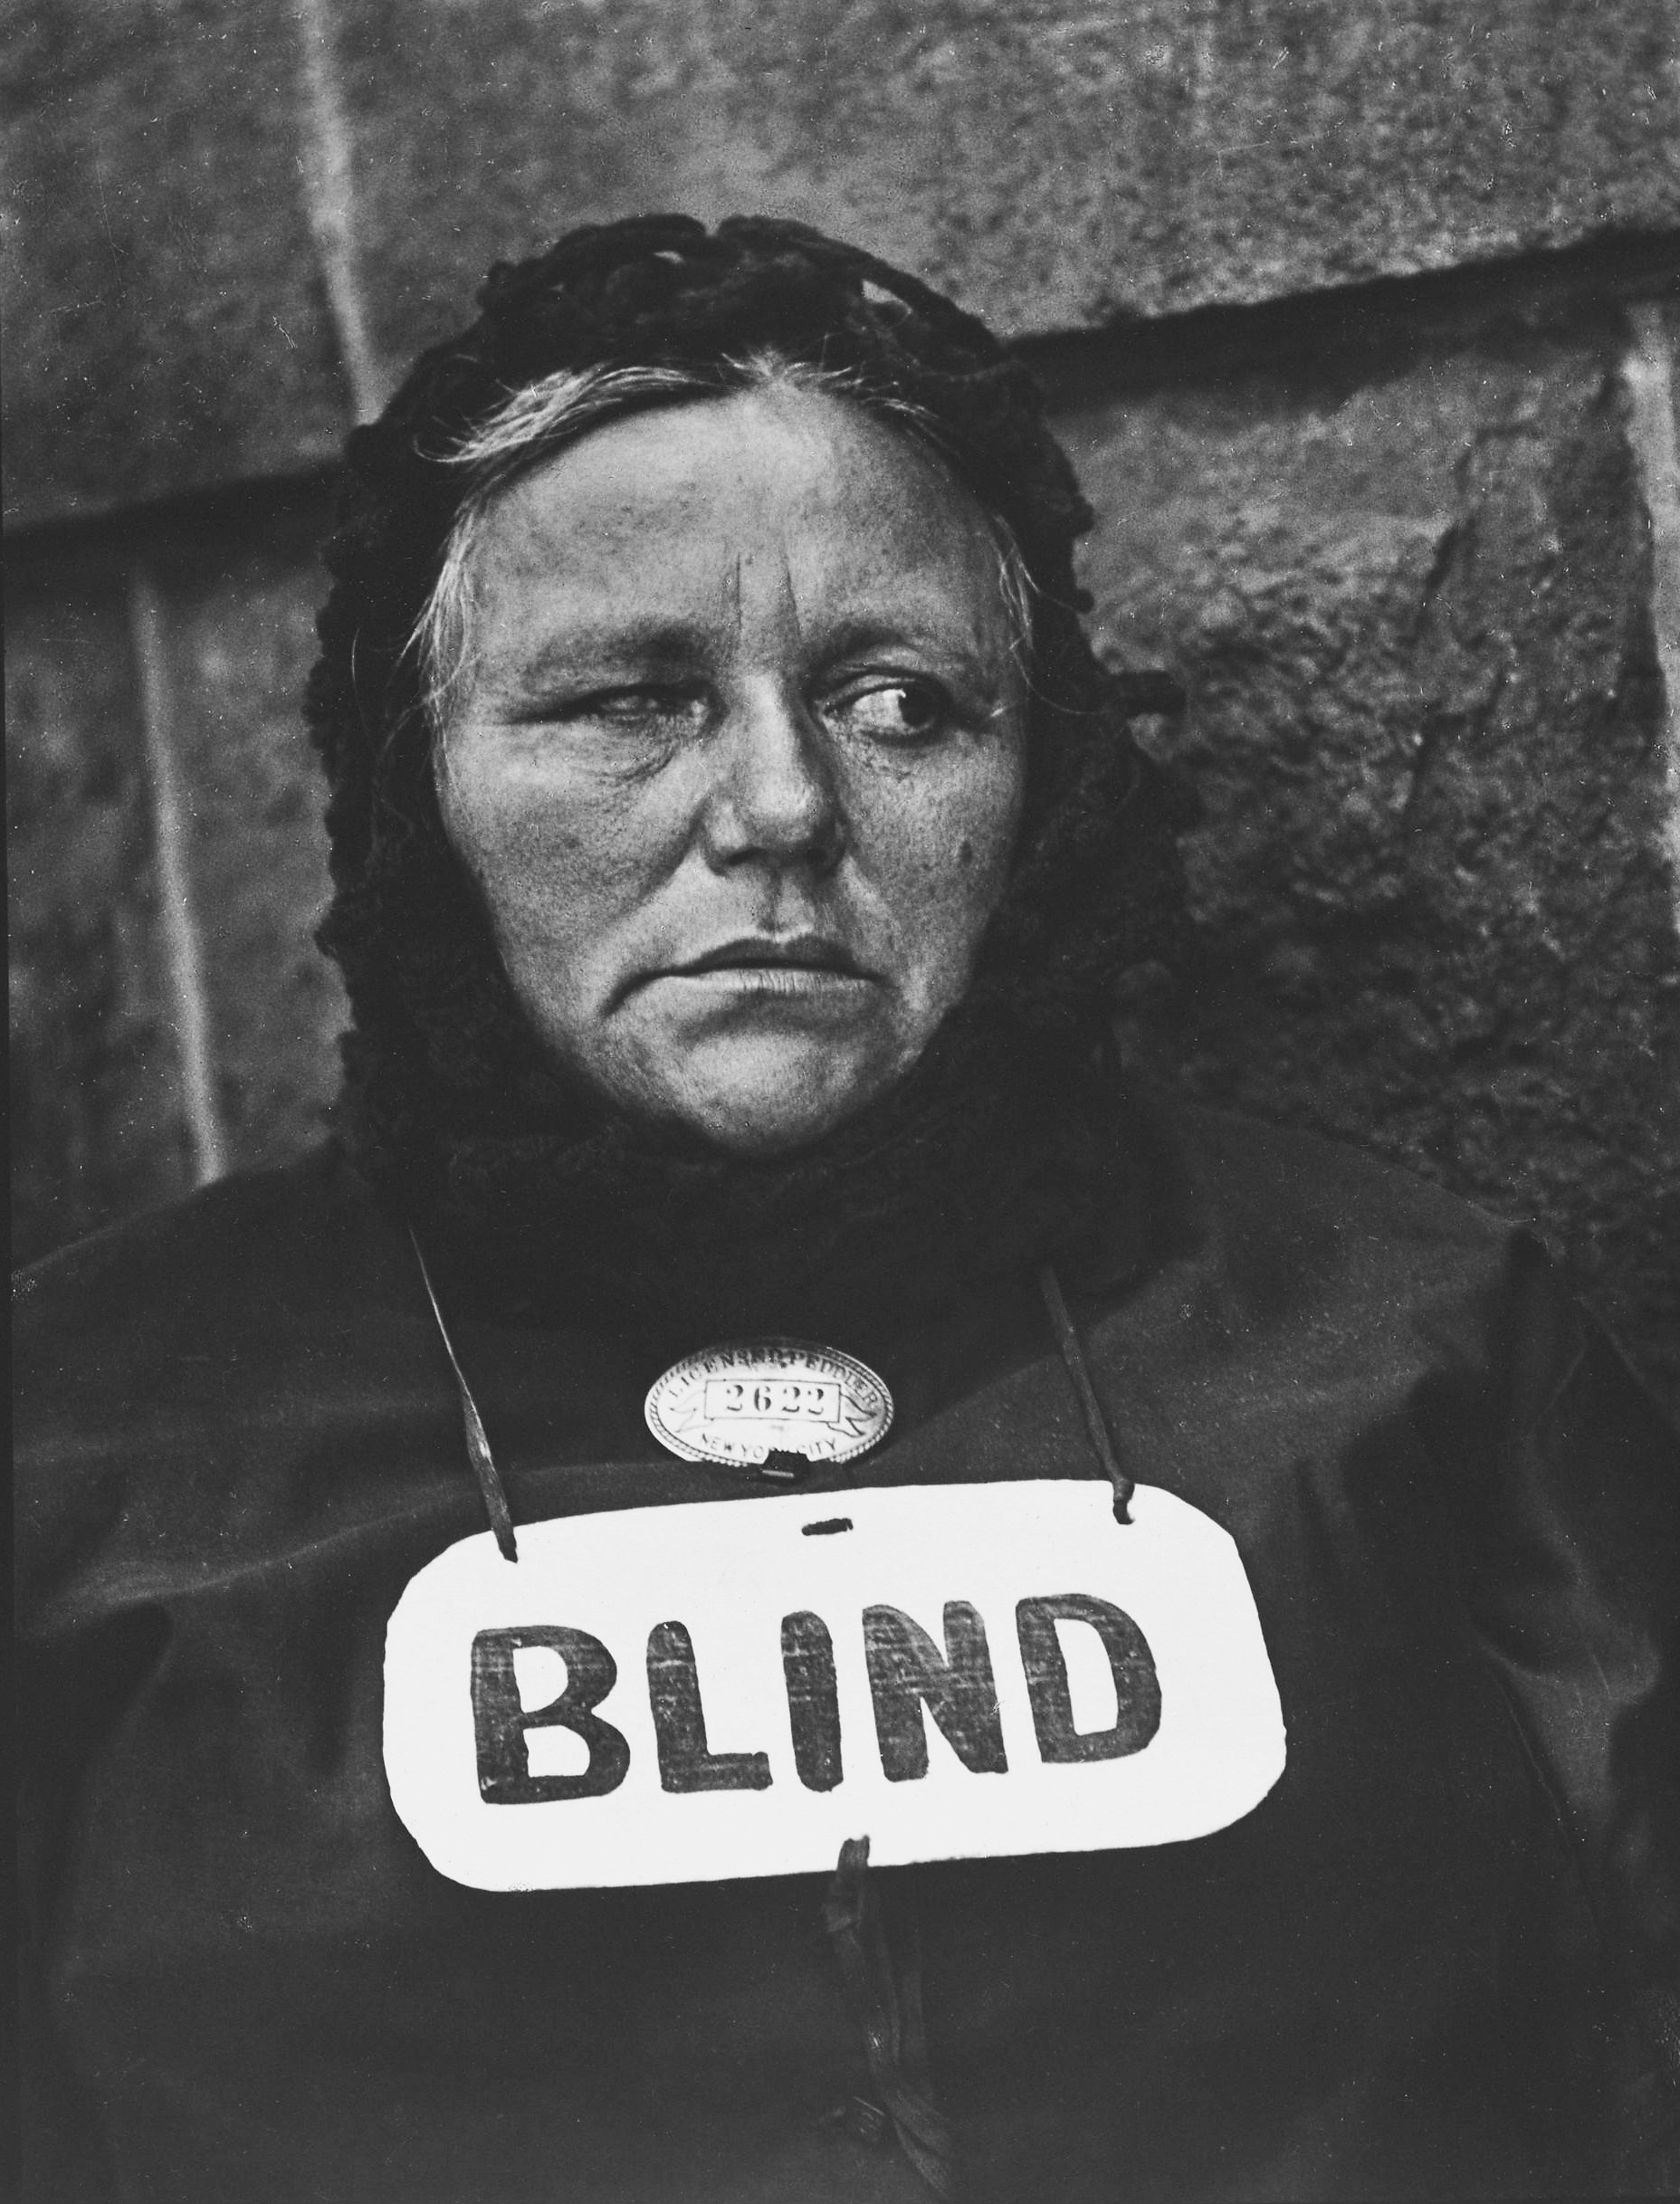 Photo by Paul Strand.